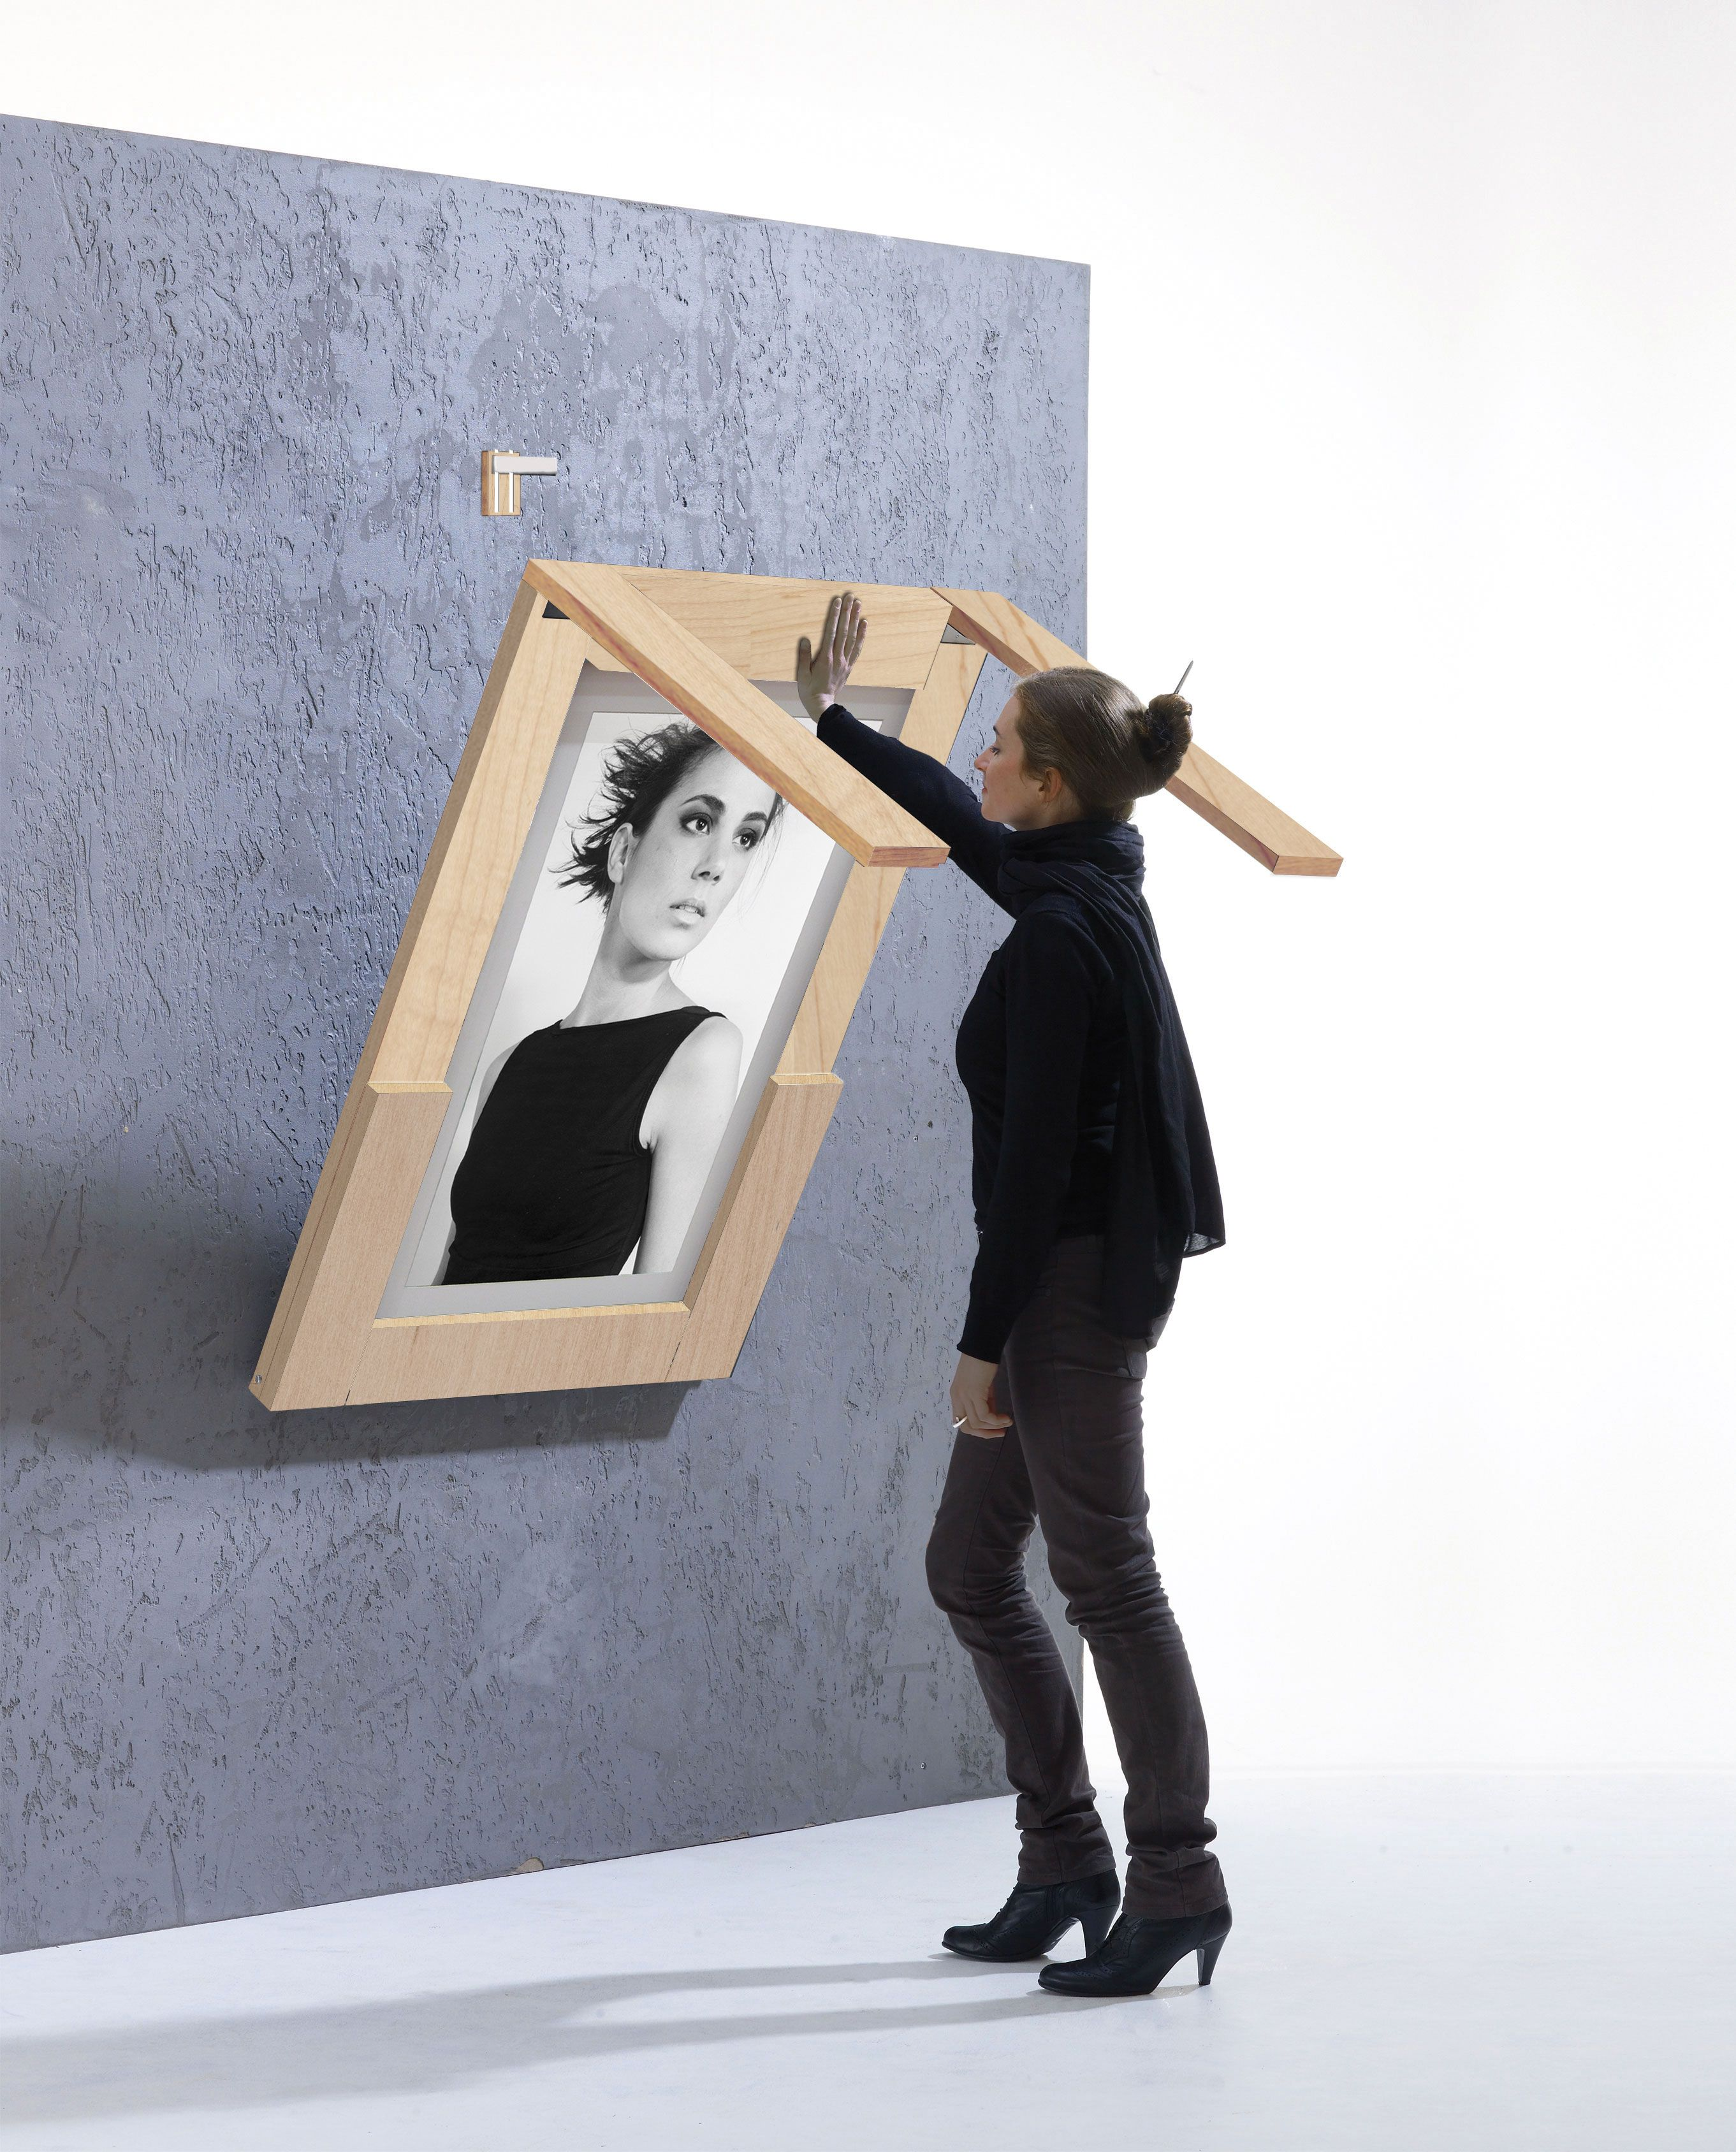 Ivydesign Picture Table Shows Photos Of Your Choice And Folds - Picture-table-by-ivydesign